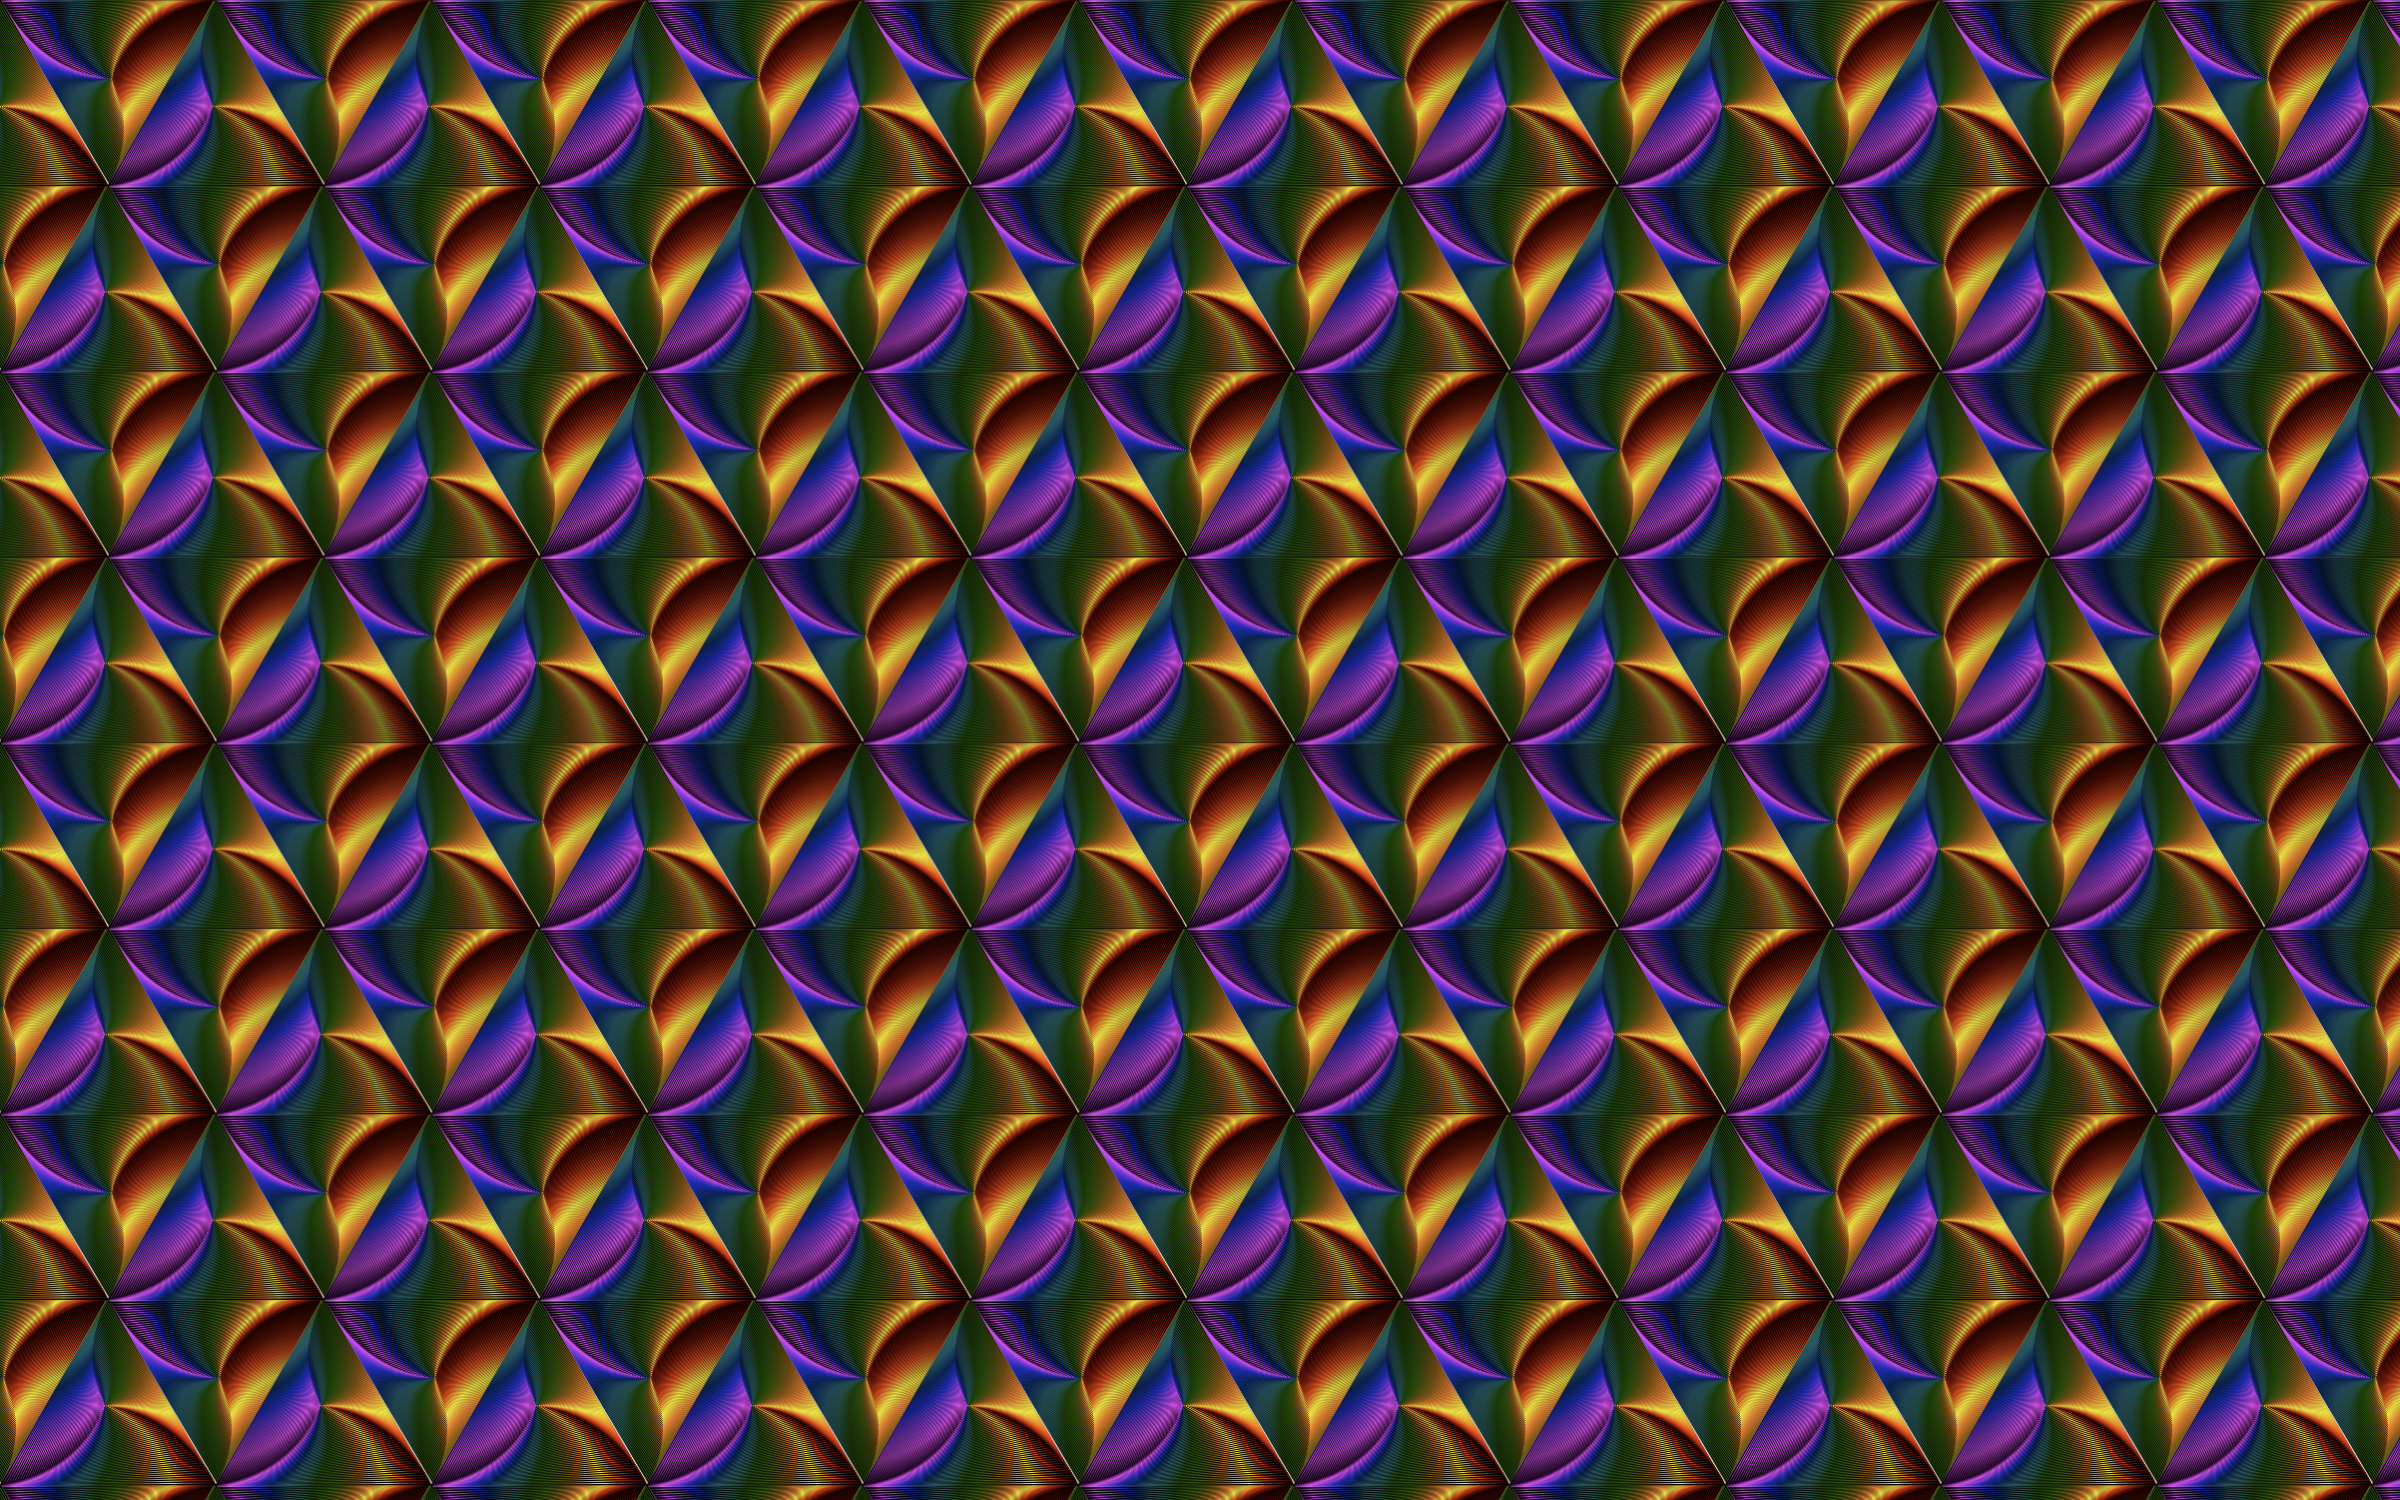 Seamless Prismatic Line Art Pattern by GDJ